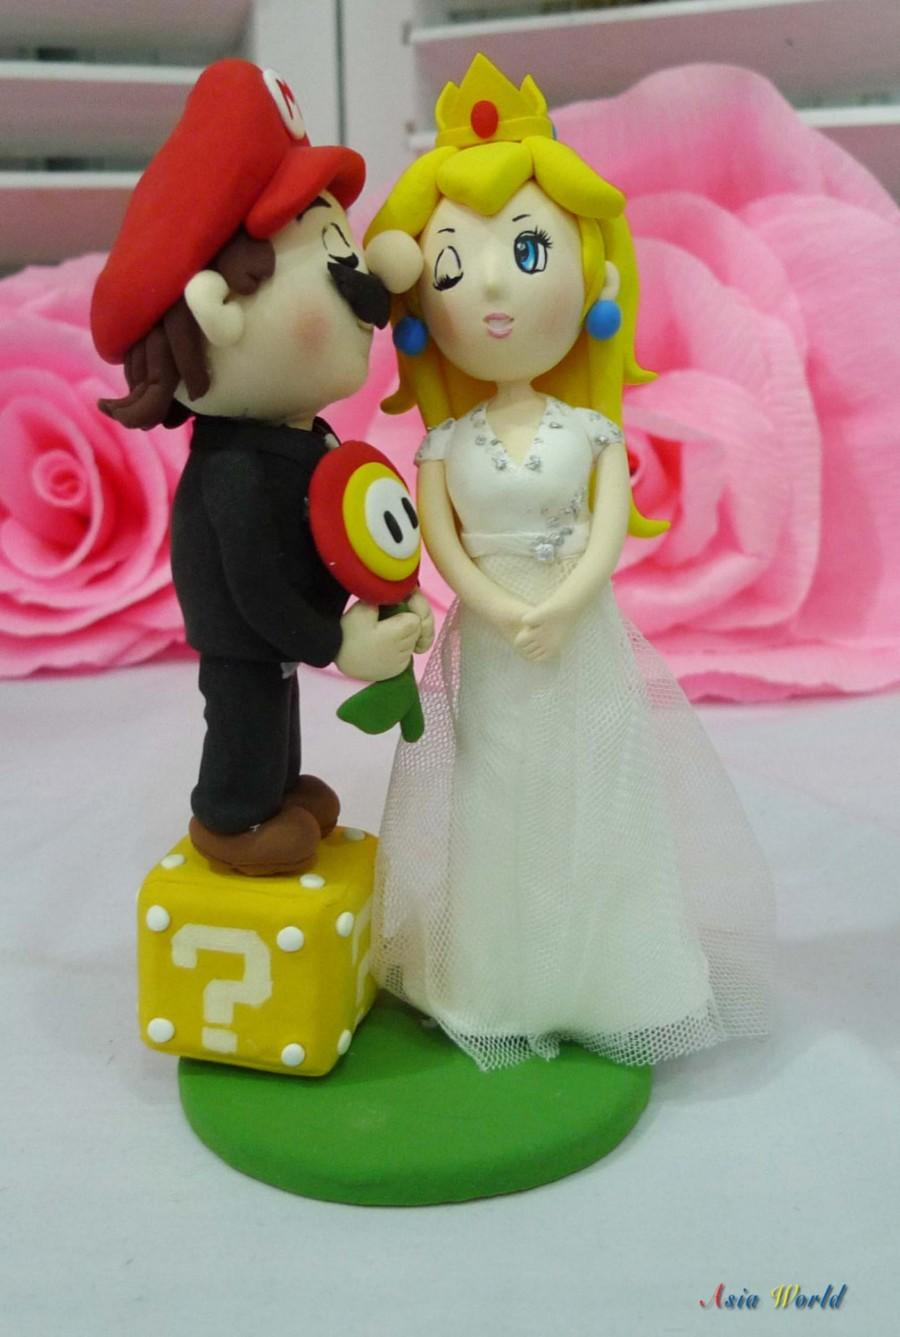 Hochzeit - Wedding cake topper Super Mario and Princess Peach with Fire flower and coin box clay doll, clay figurine decor, clay miniature wedding gift